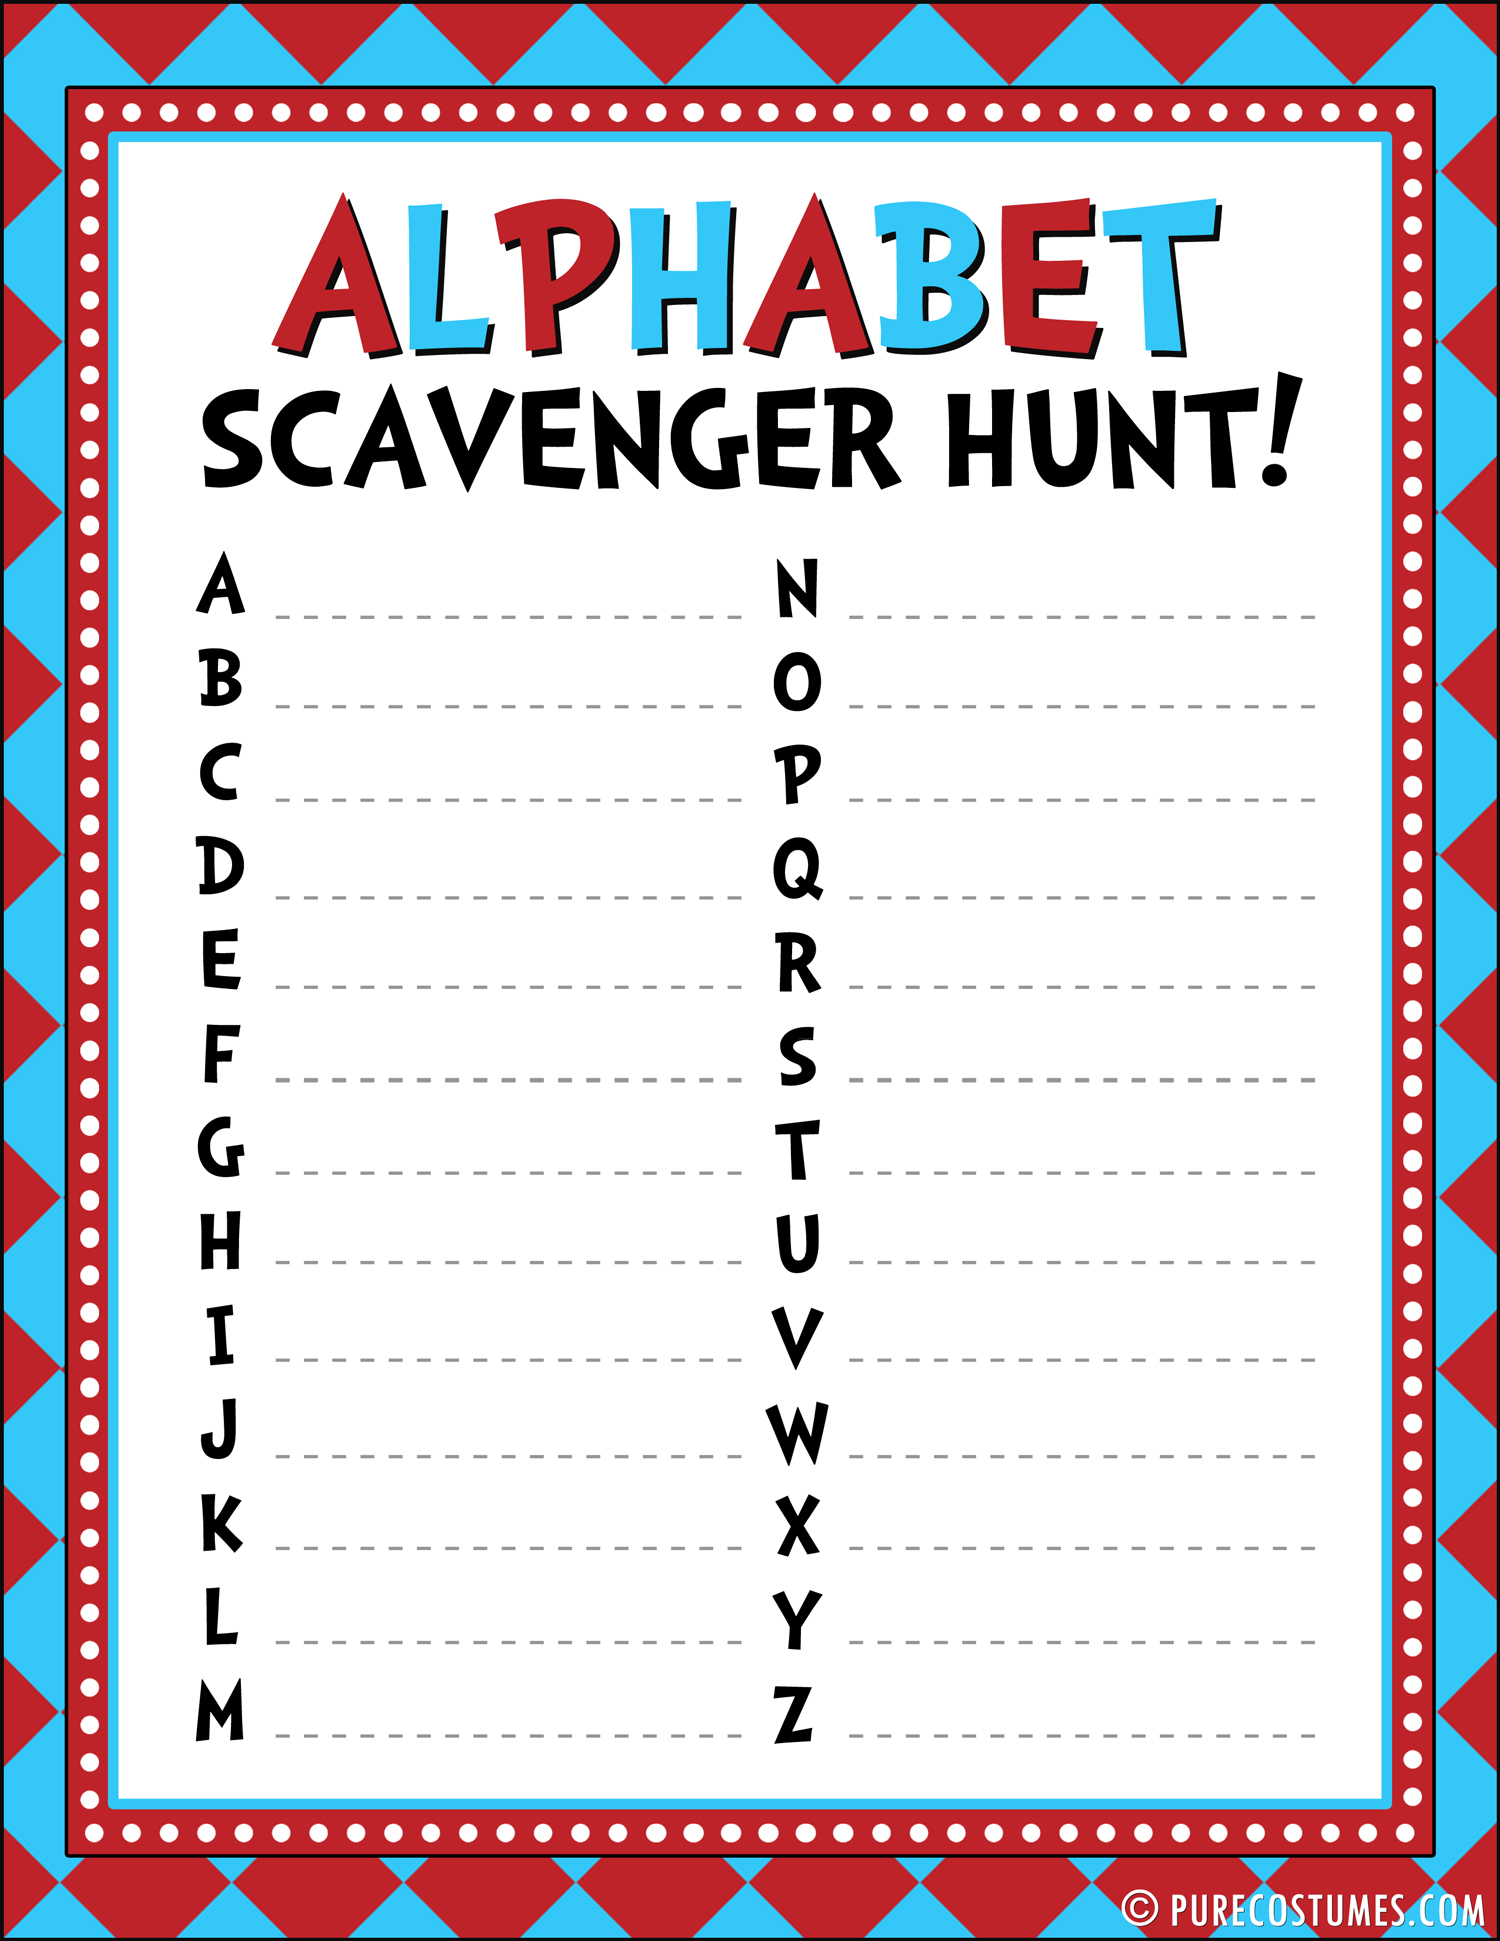 6 Images of Alphabet Scavenger Hunt Printable